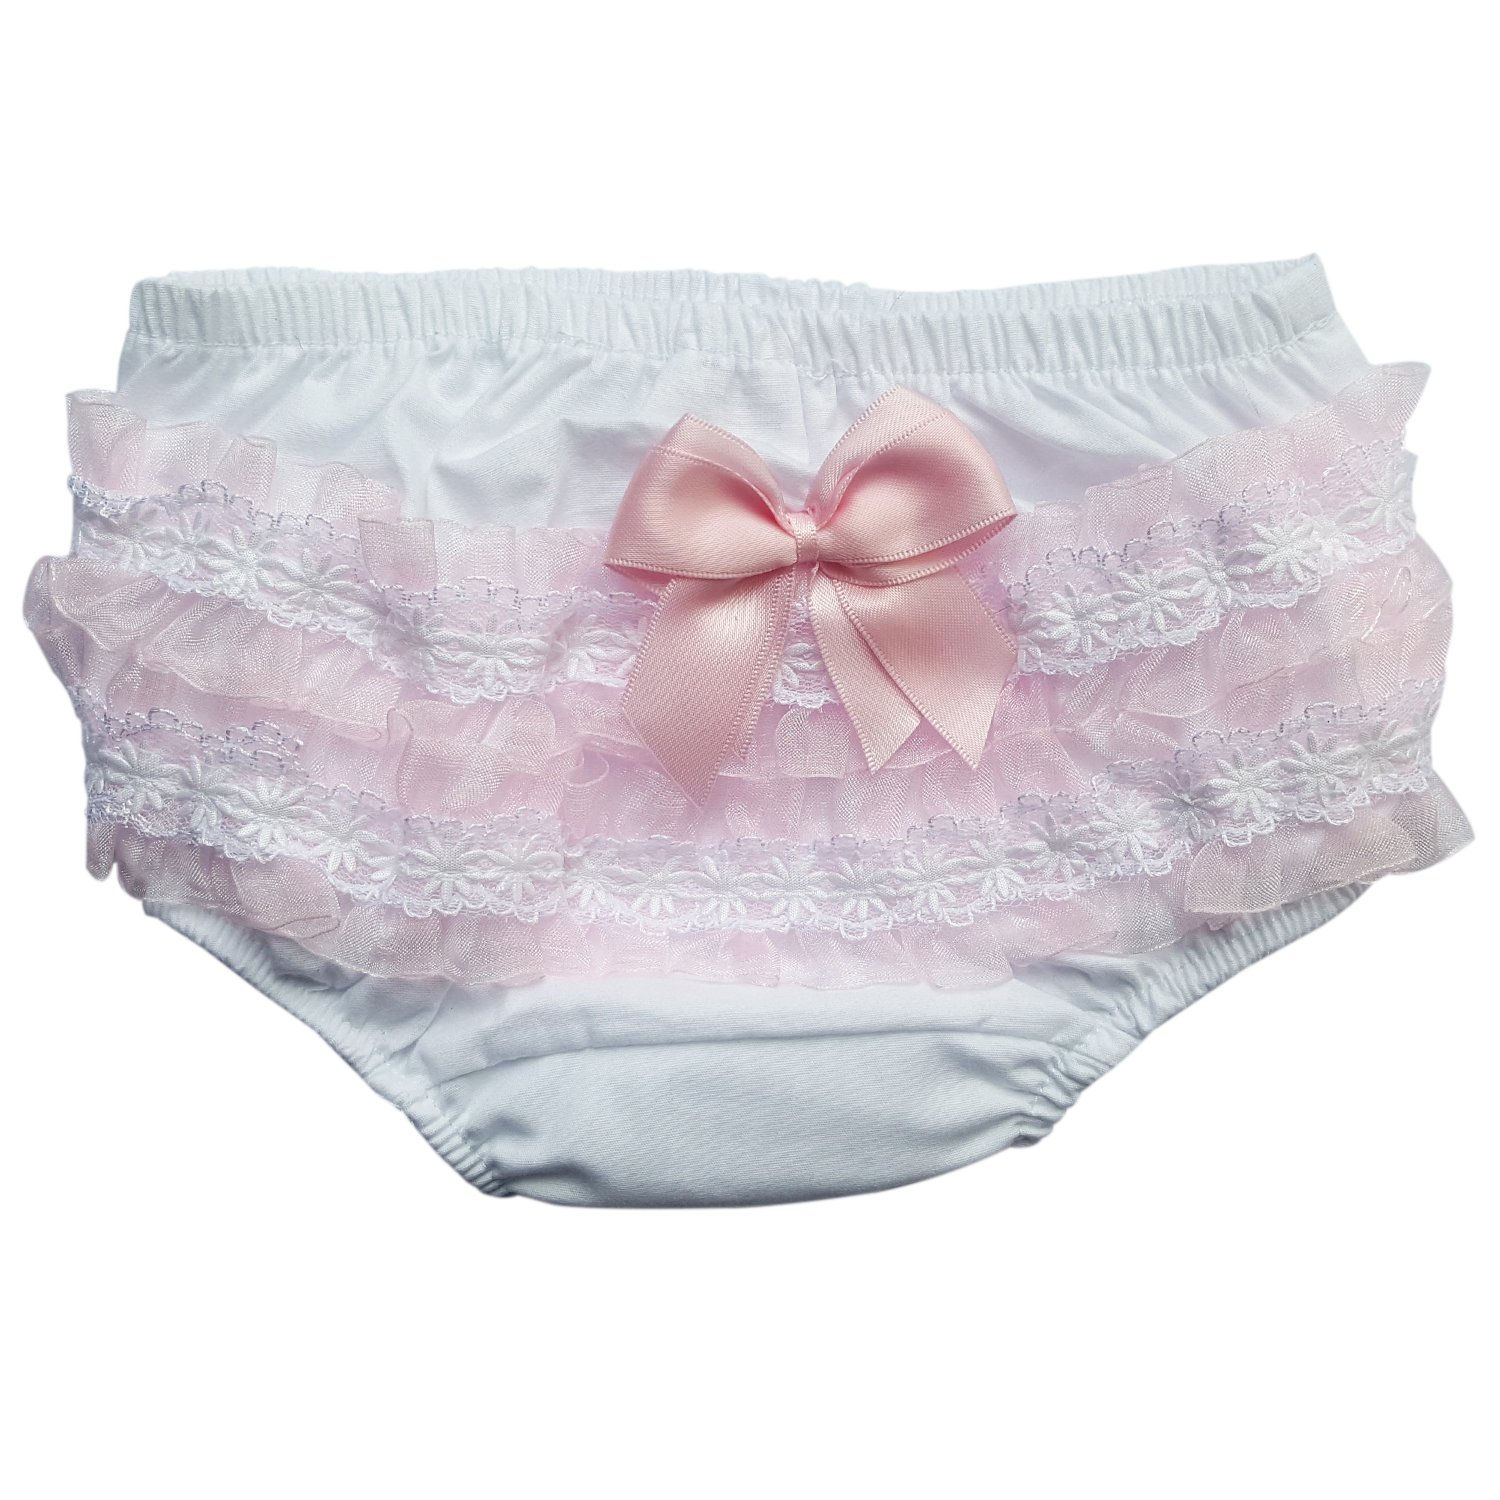 Soft Touch Baby Cotton Frilly Napper Cover in White 0-18 Months Frilly Back Knickers 6-12 Months)